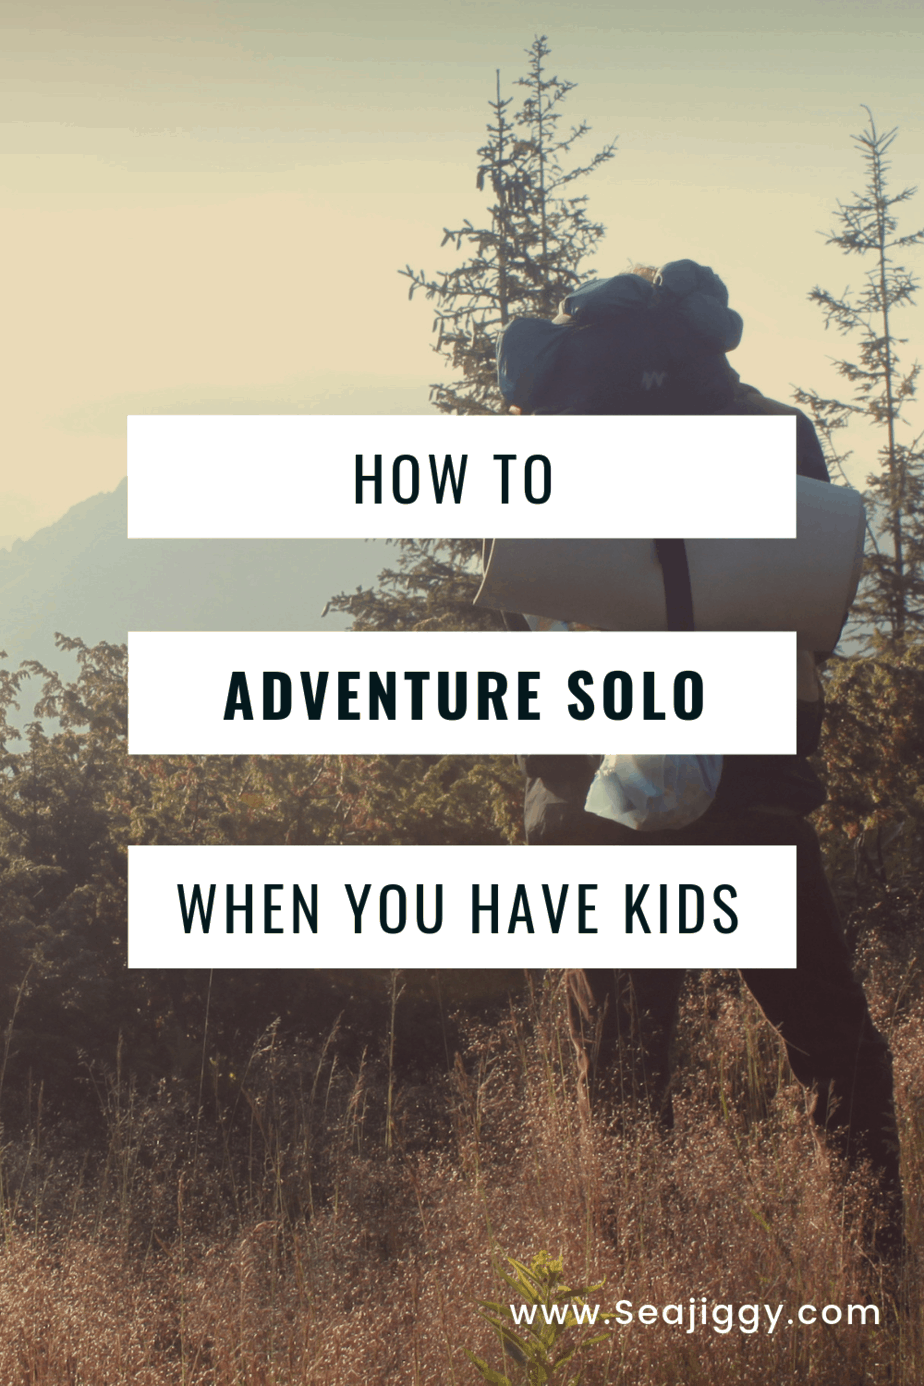 How to solo adventure when you have kids